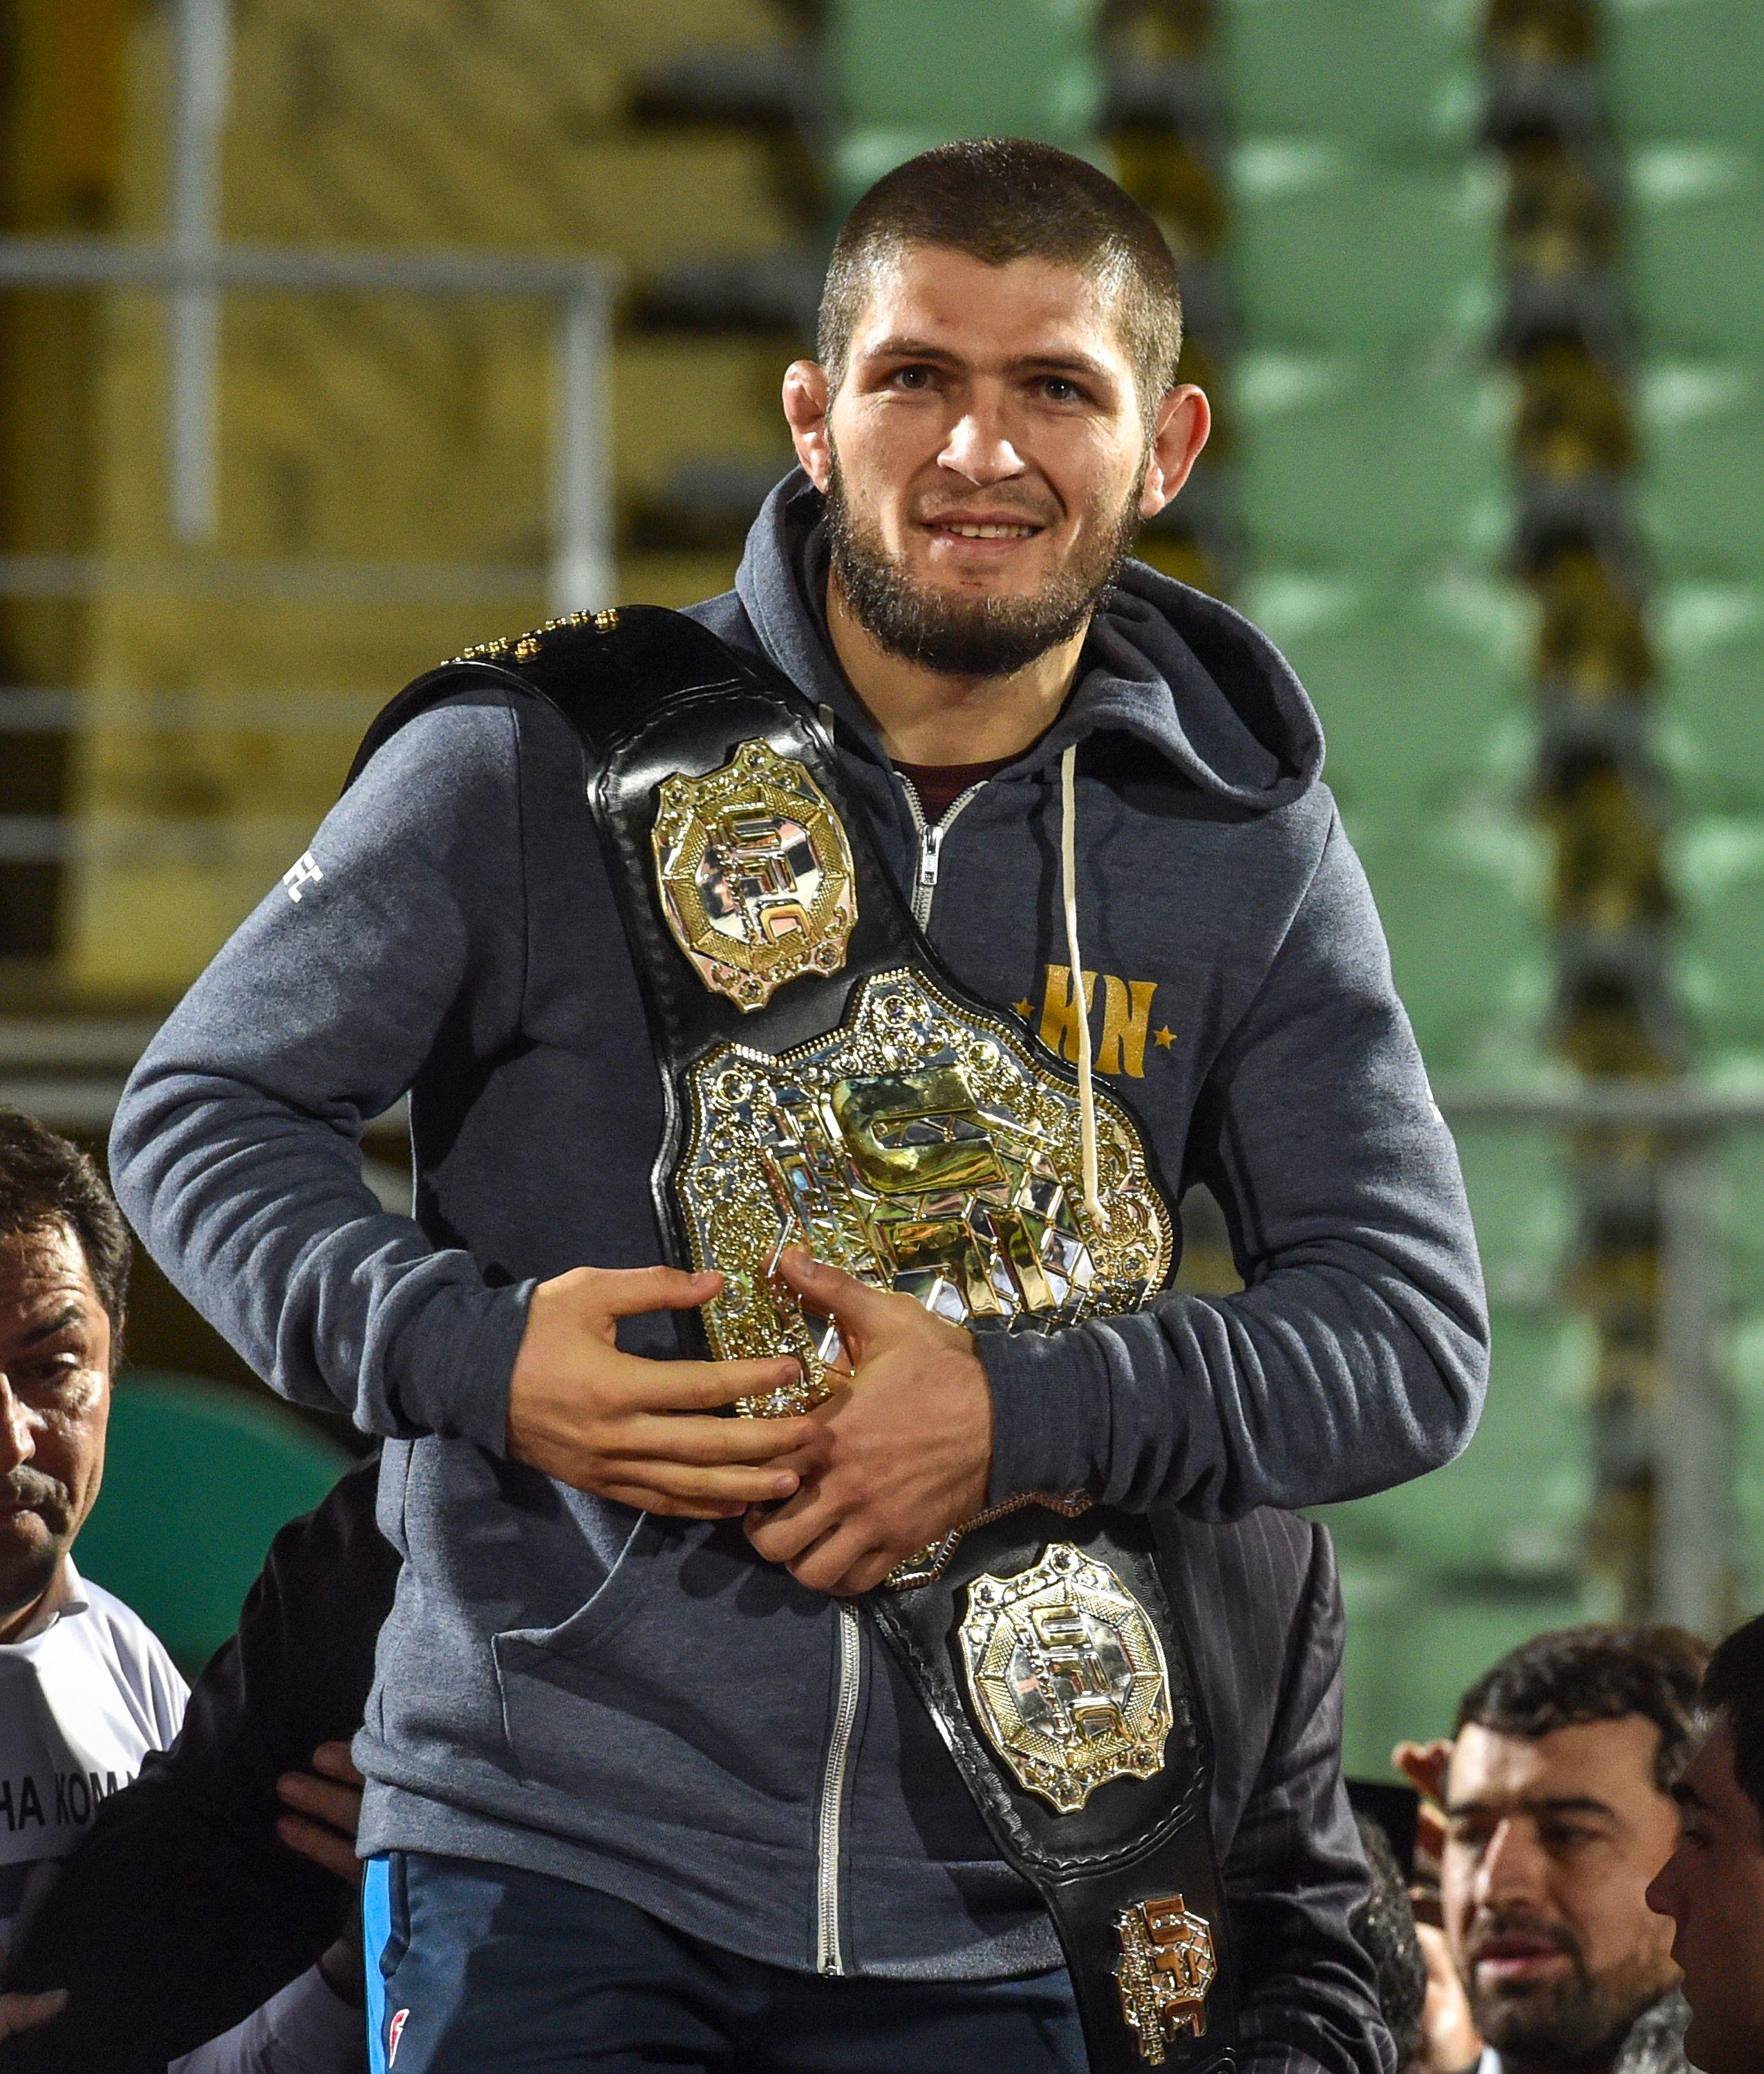 Khabib Nurmagomedov is set to take on Floyd Mayweather and Conor McGregor, his manager has suggested